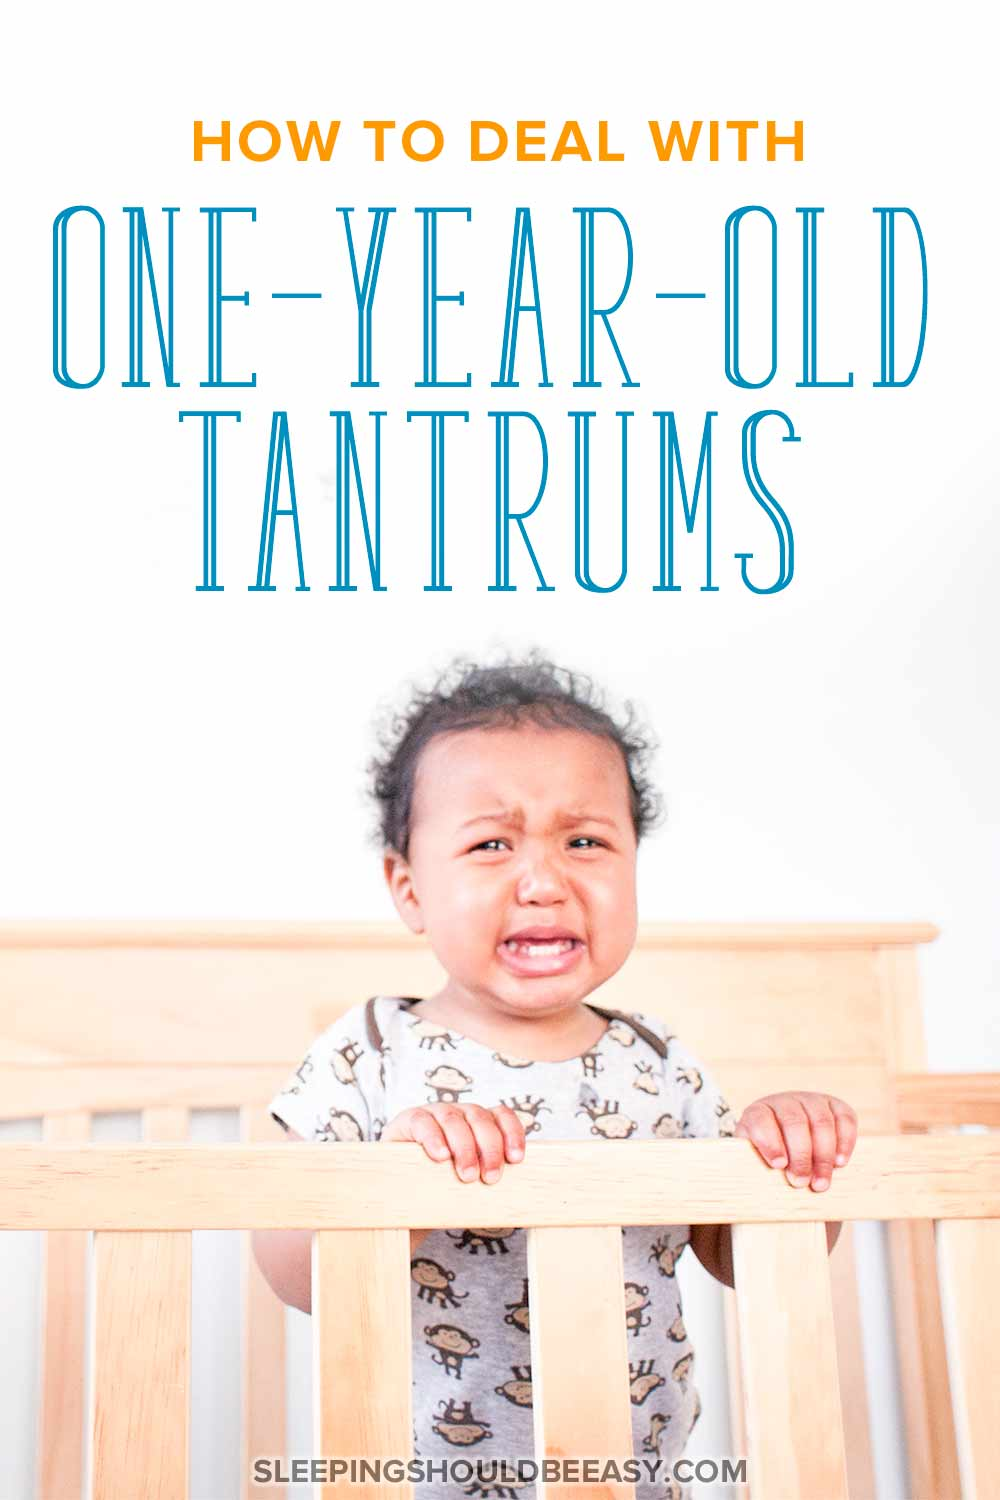 1 year old boy throwing a tantrum and crying, standing in a crib with hands